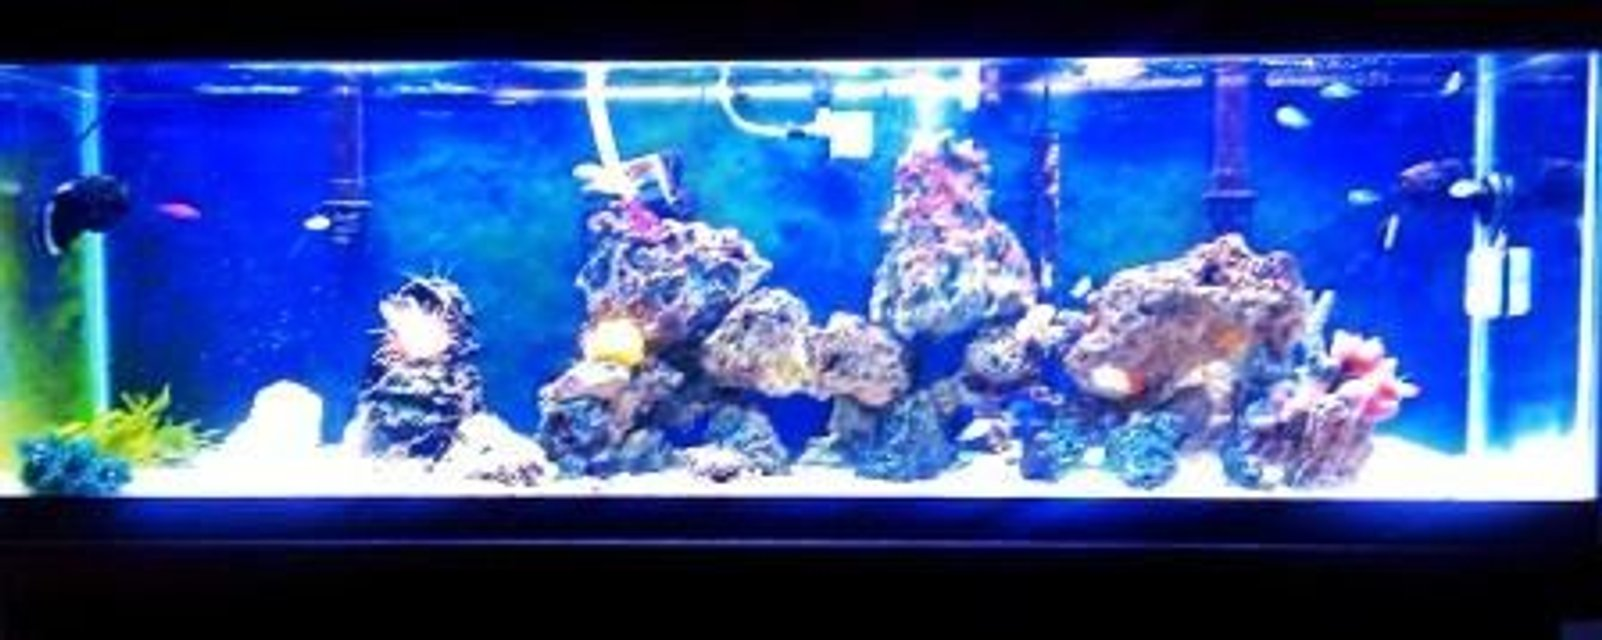 Rated #116: 125 Gallons Reef Tank - Yeah I know....... I need a better camera than the one on my phone. But I wanted a completed page. This is week 35 and counting.